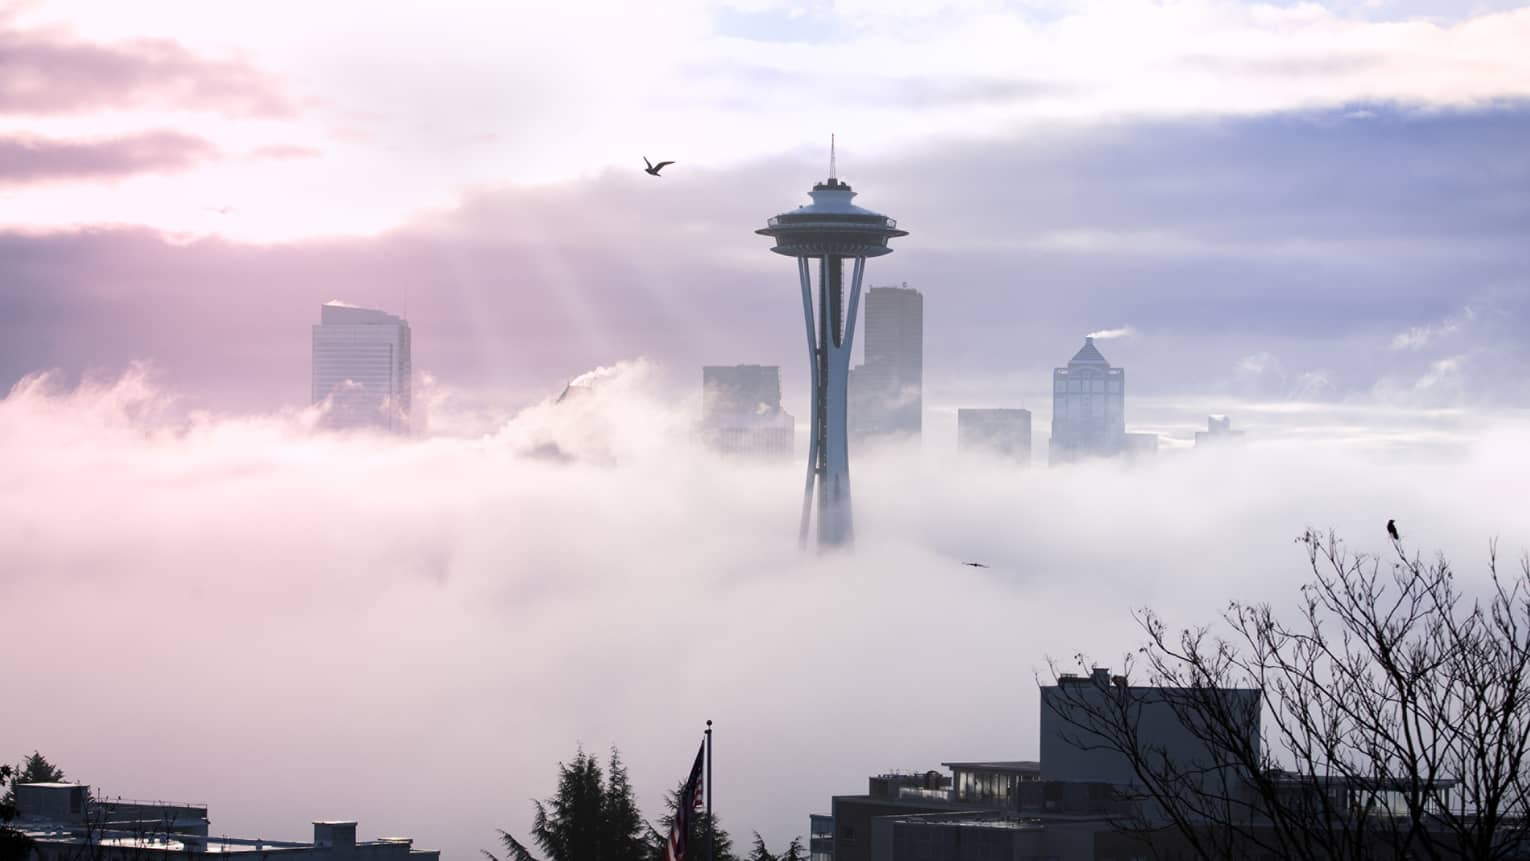 Seattle Space Needle emerging from white clouds, mist, silhouette of bird against sky